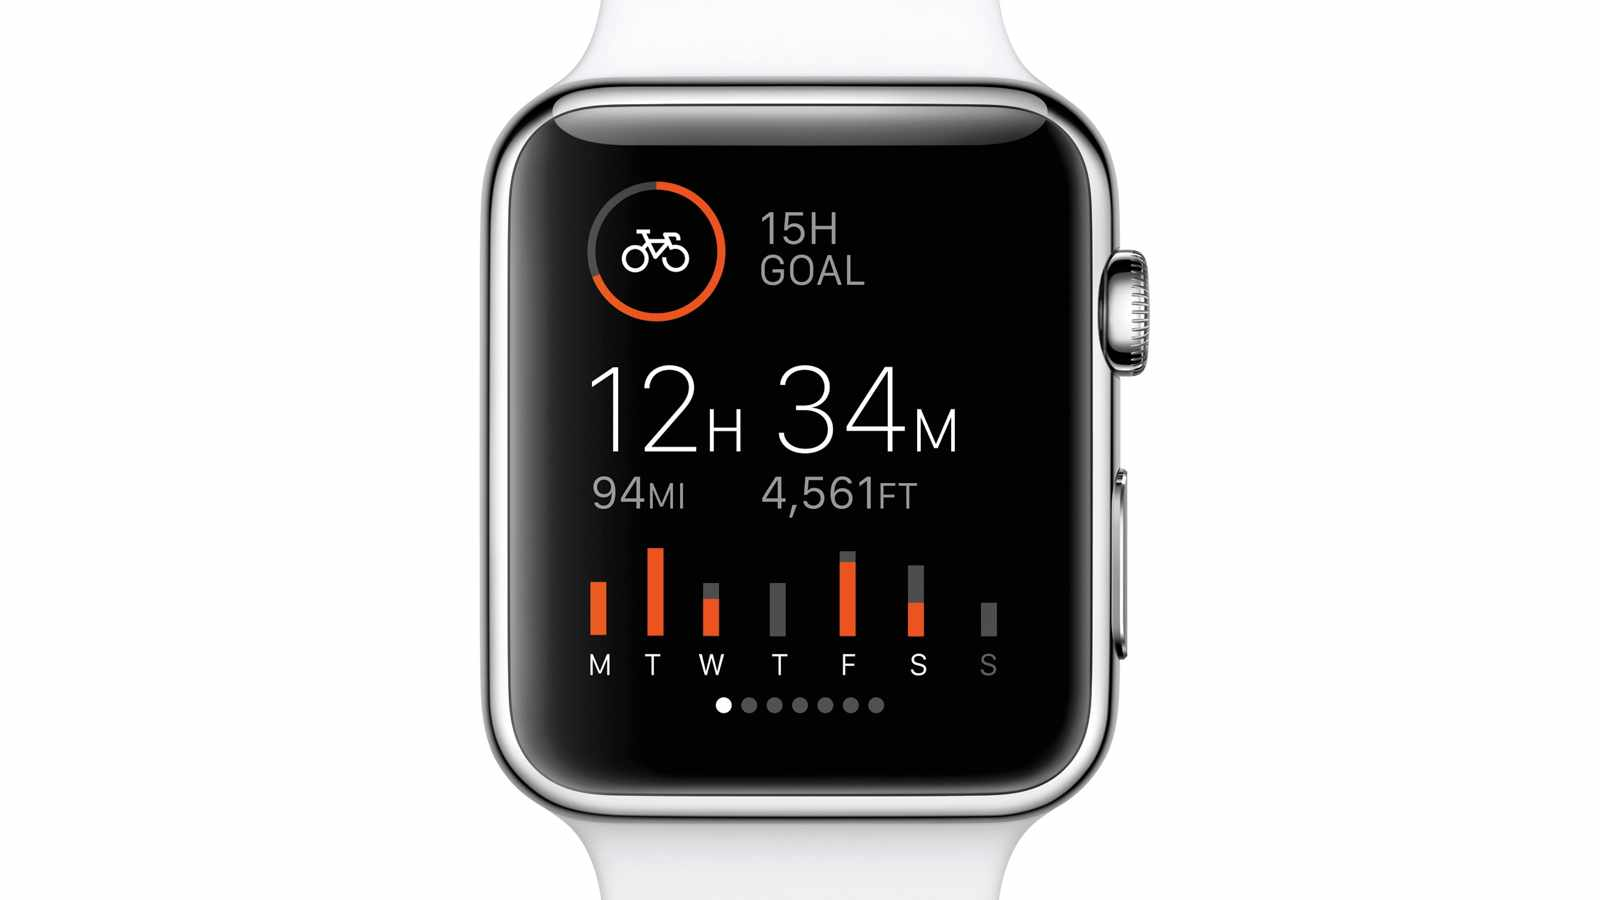 Strava now has an app for the forthcoming Apple Watch